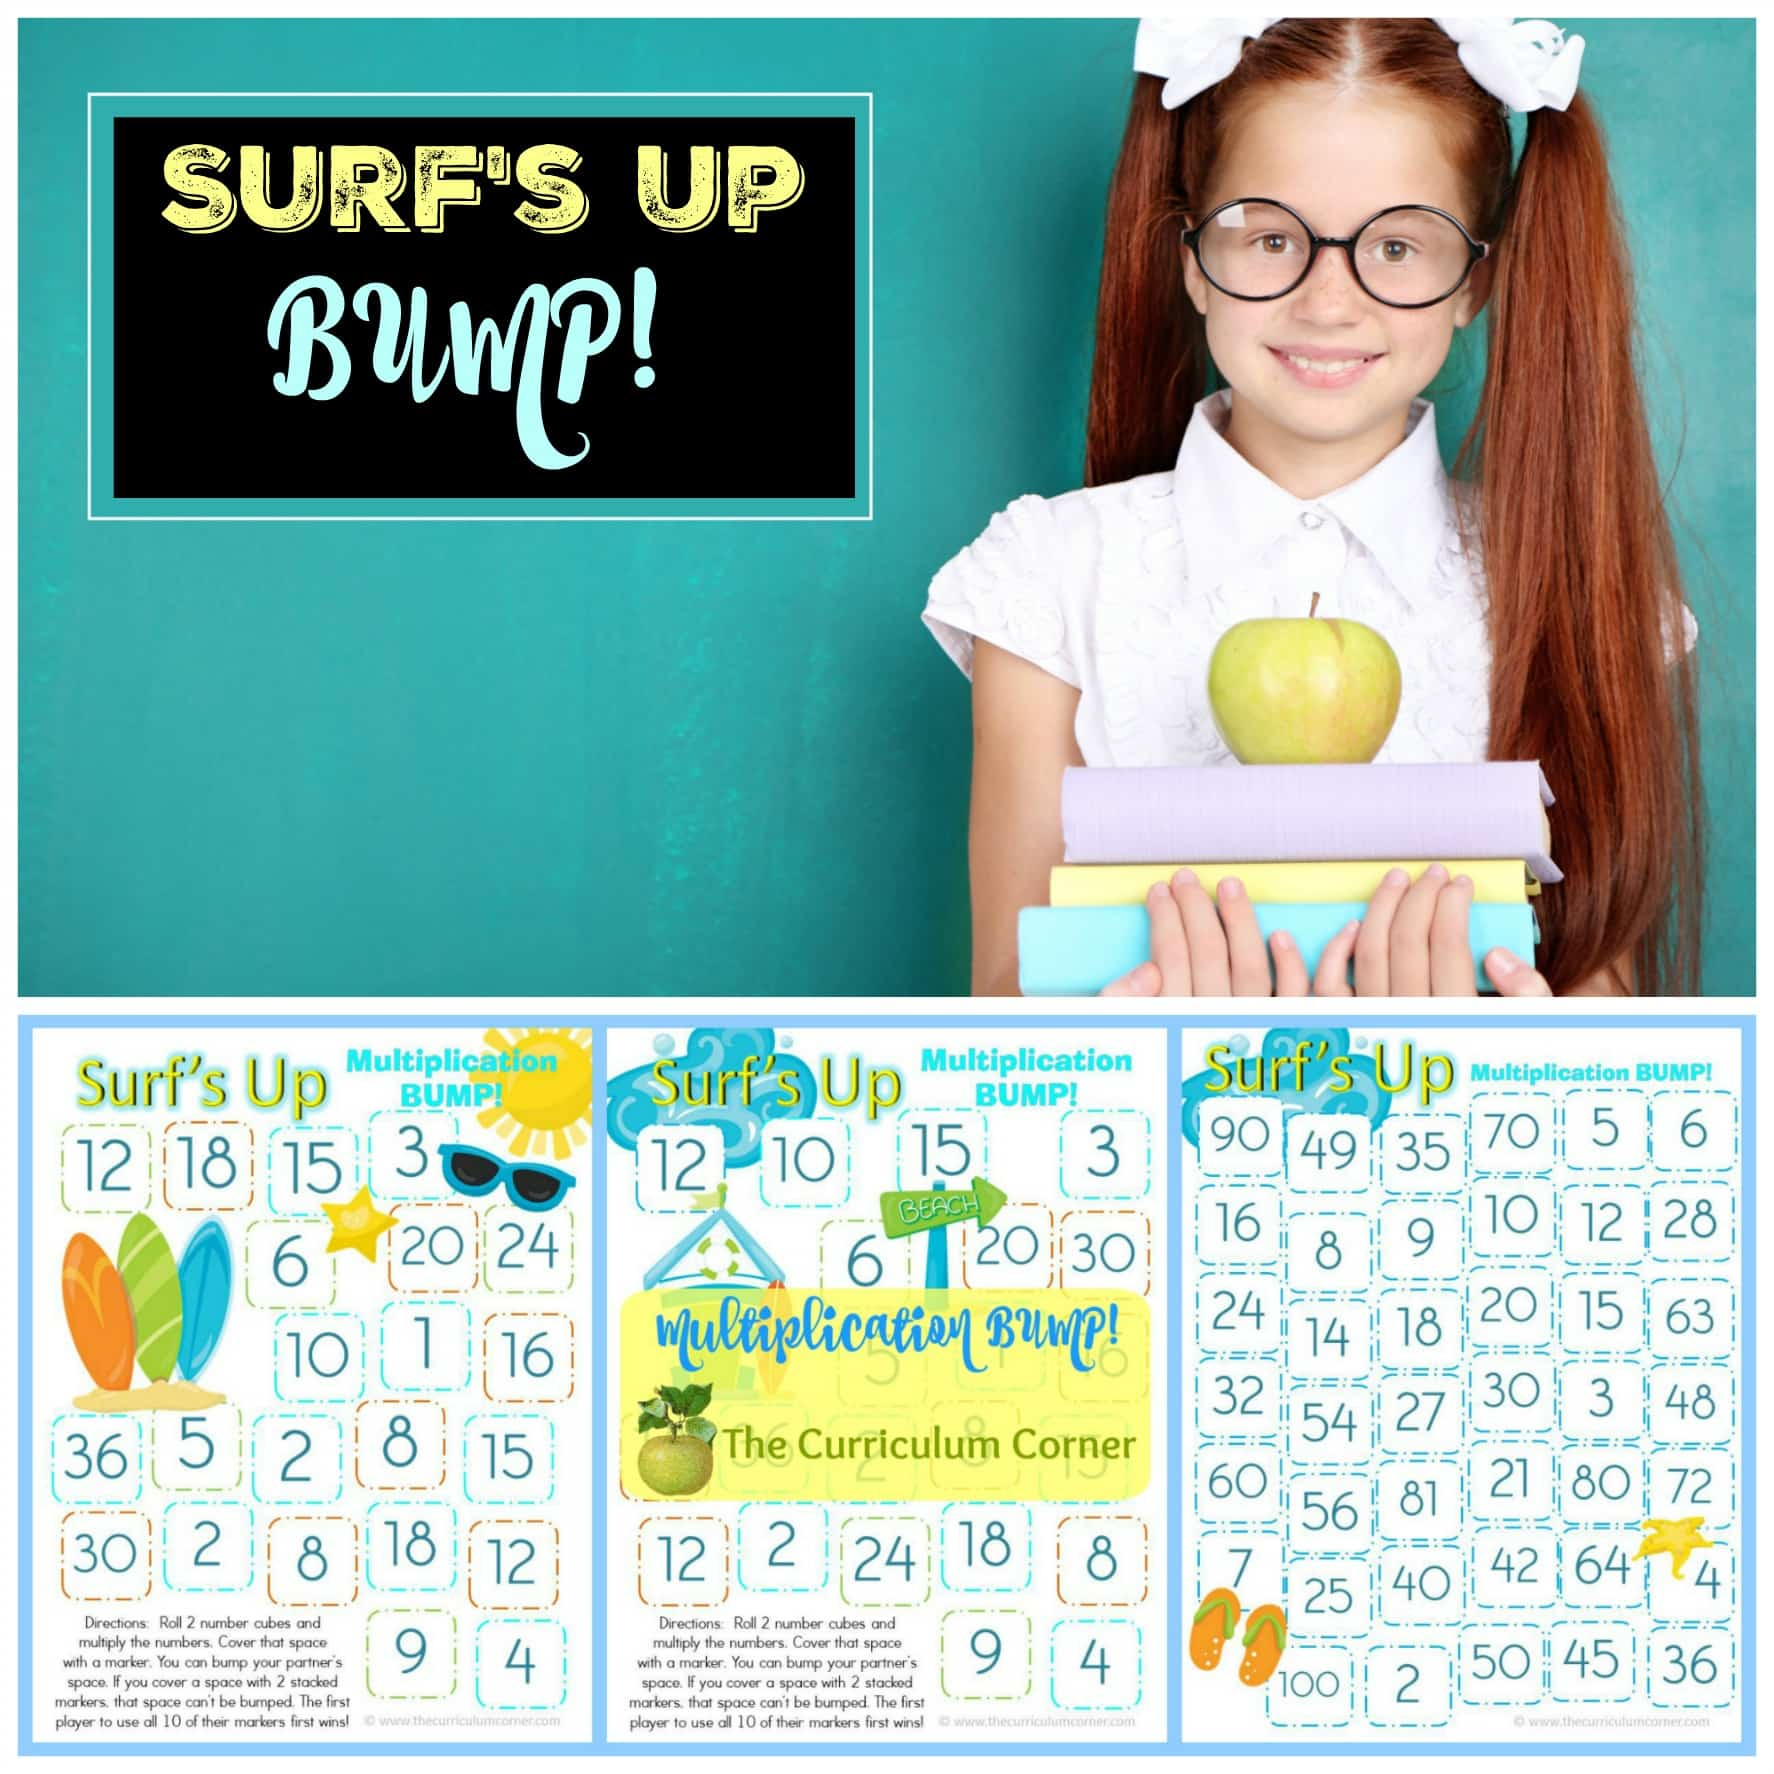 Surf's Up Multiplication Bump